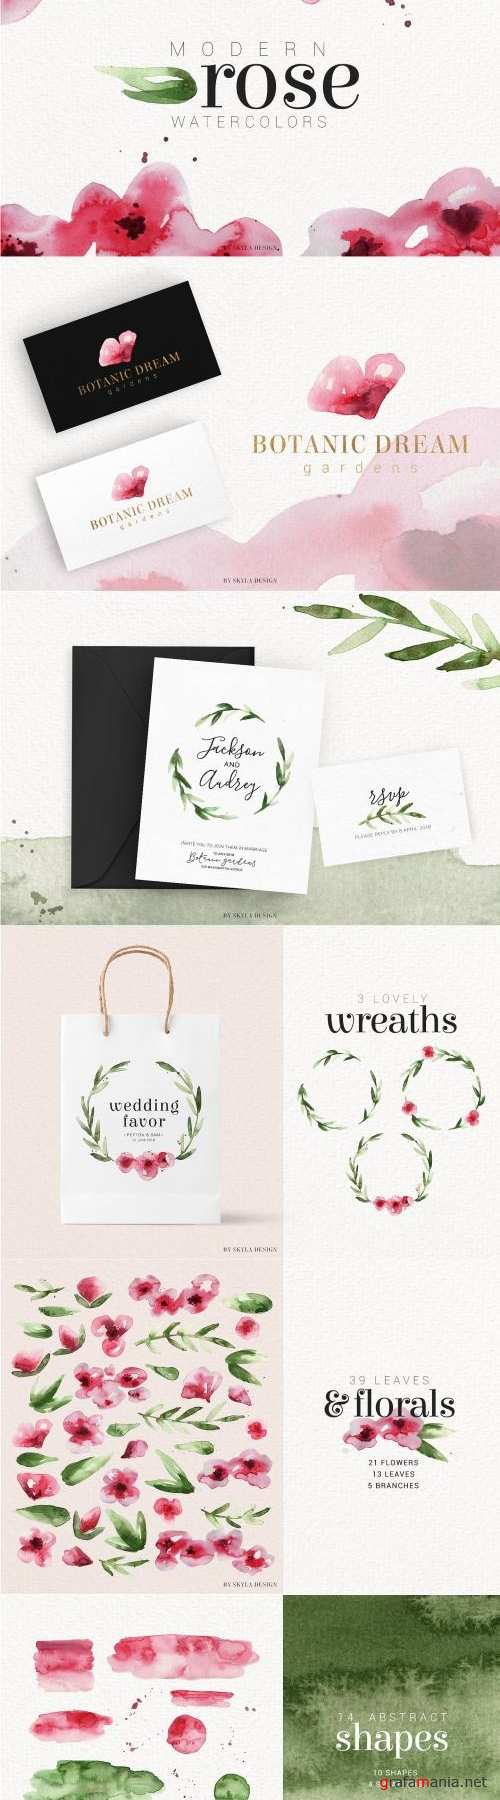 Modern Rose watercolor clipart - 2669447